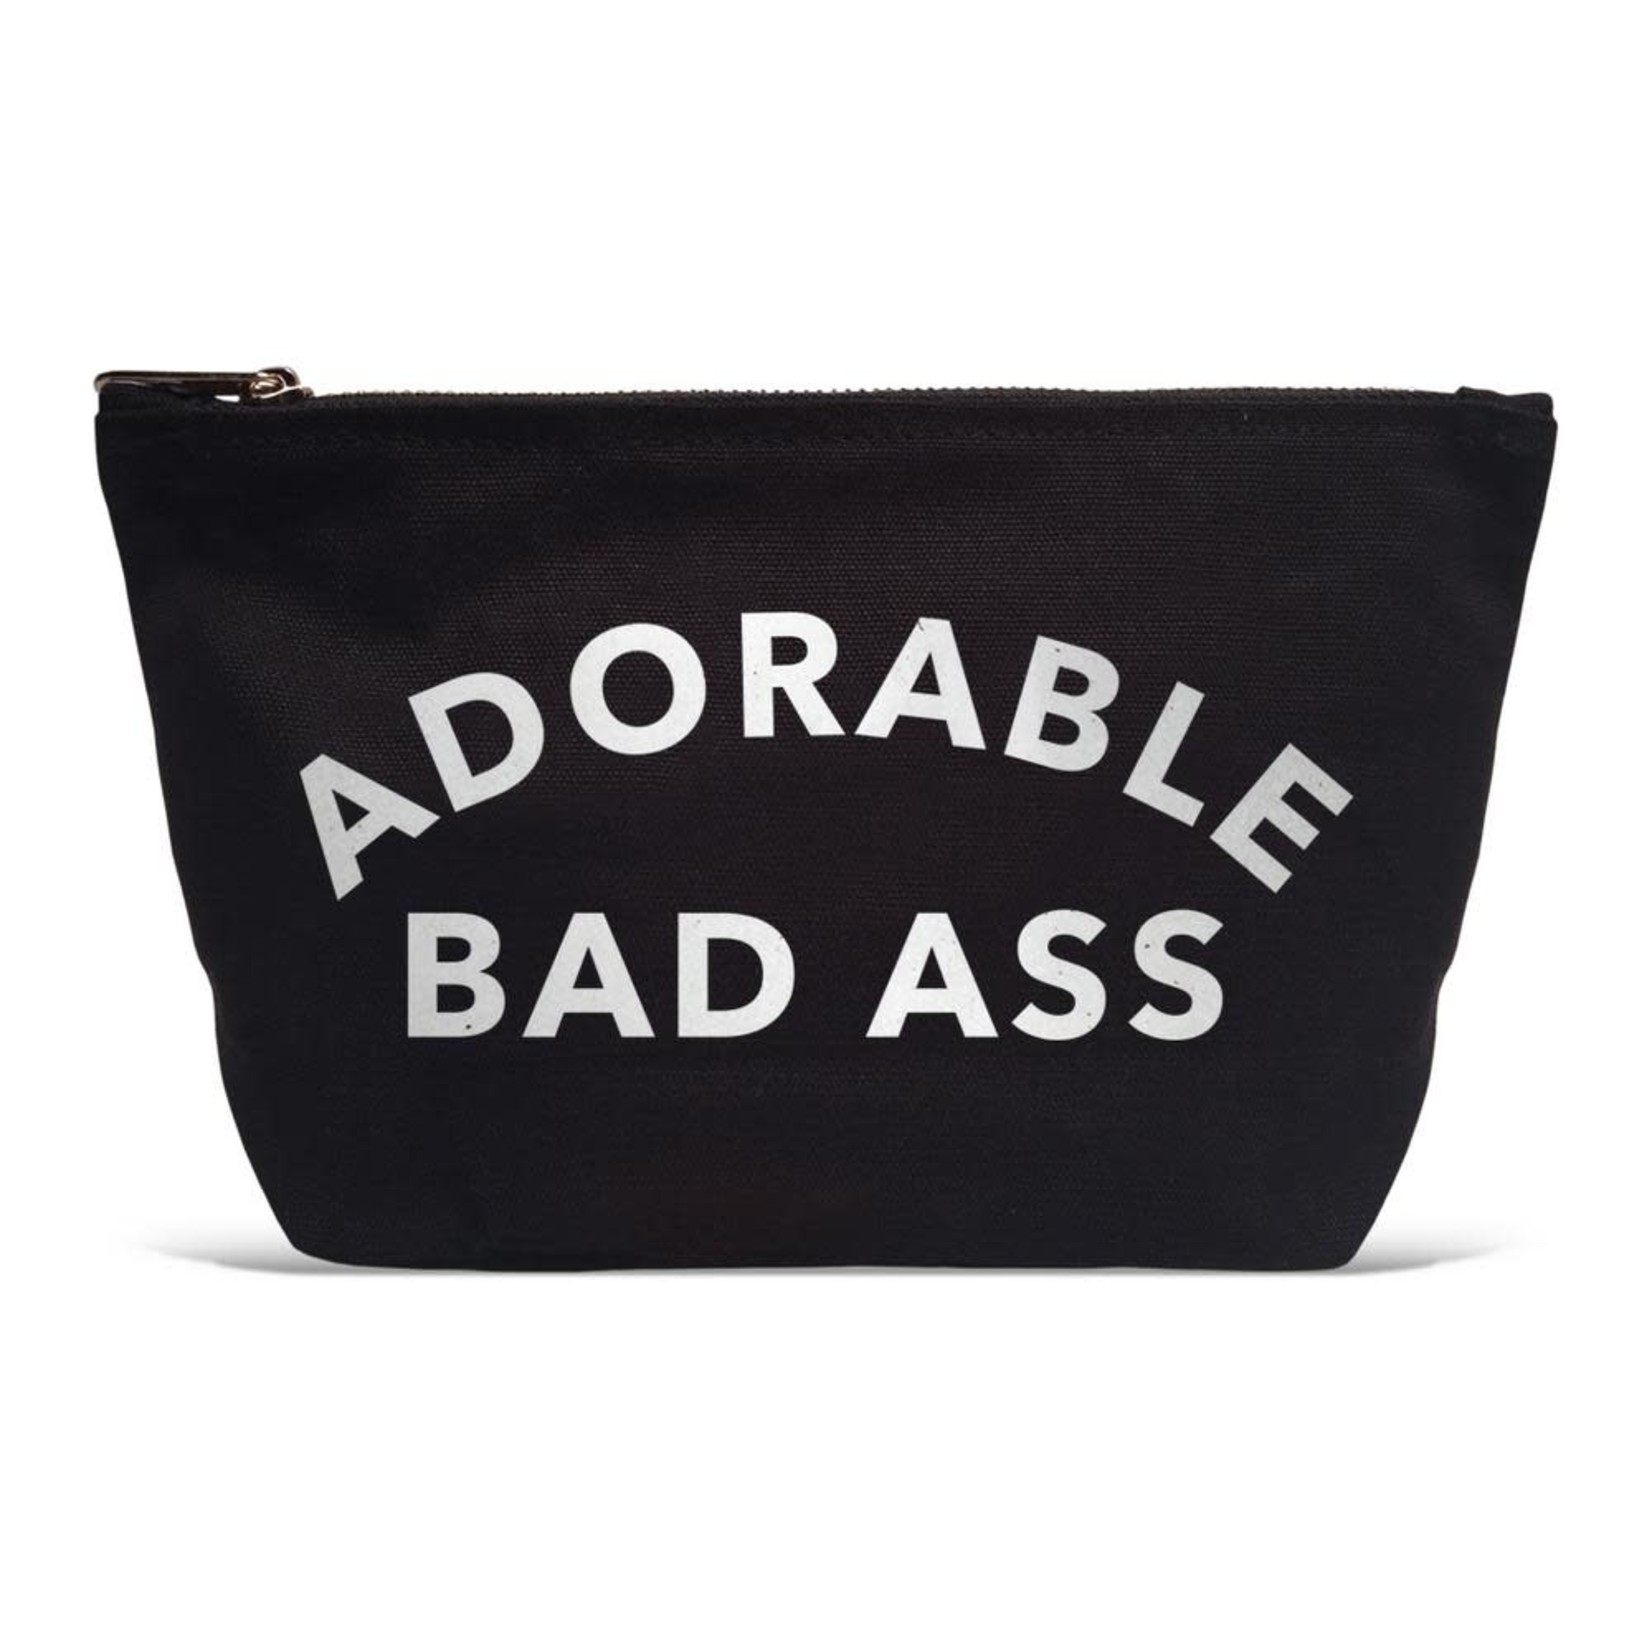 """Los Angeles Trading Co """"Adorable Bad Ass"""" Pouch"""